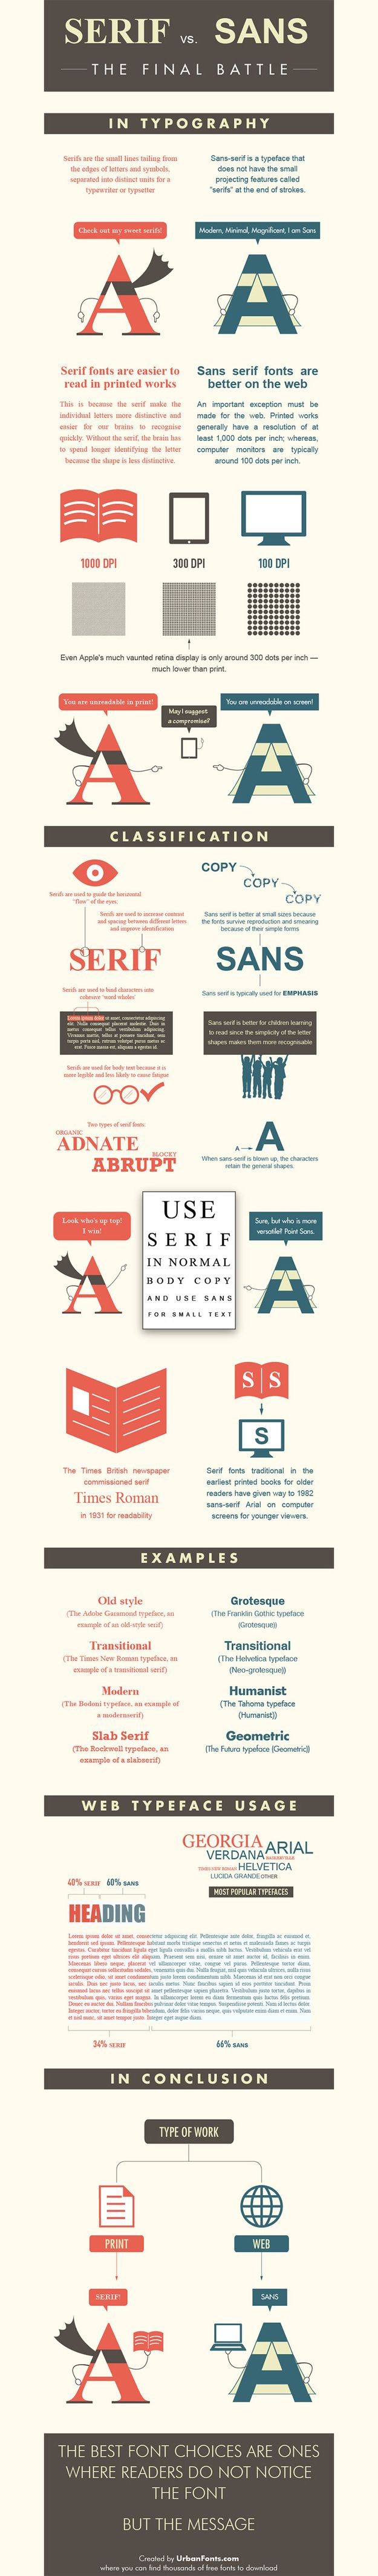 The Difference Between Serif And Sans-Serif Explained In One Infographic - BuzzFeed Mobile